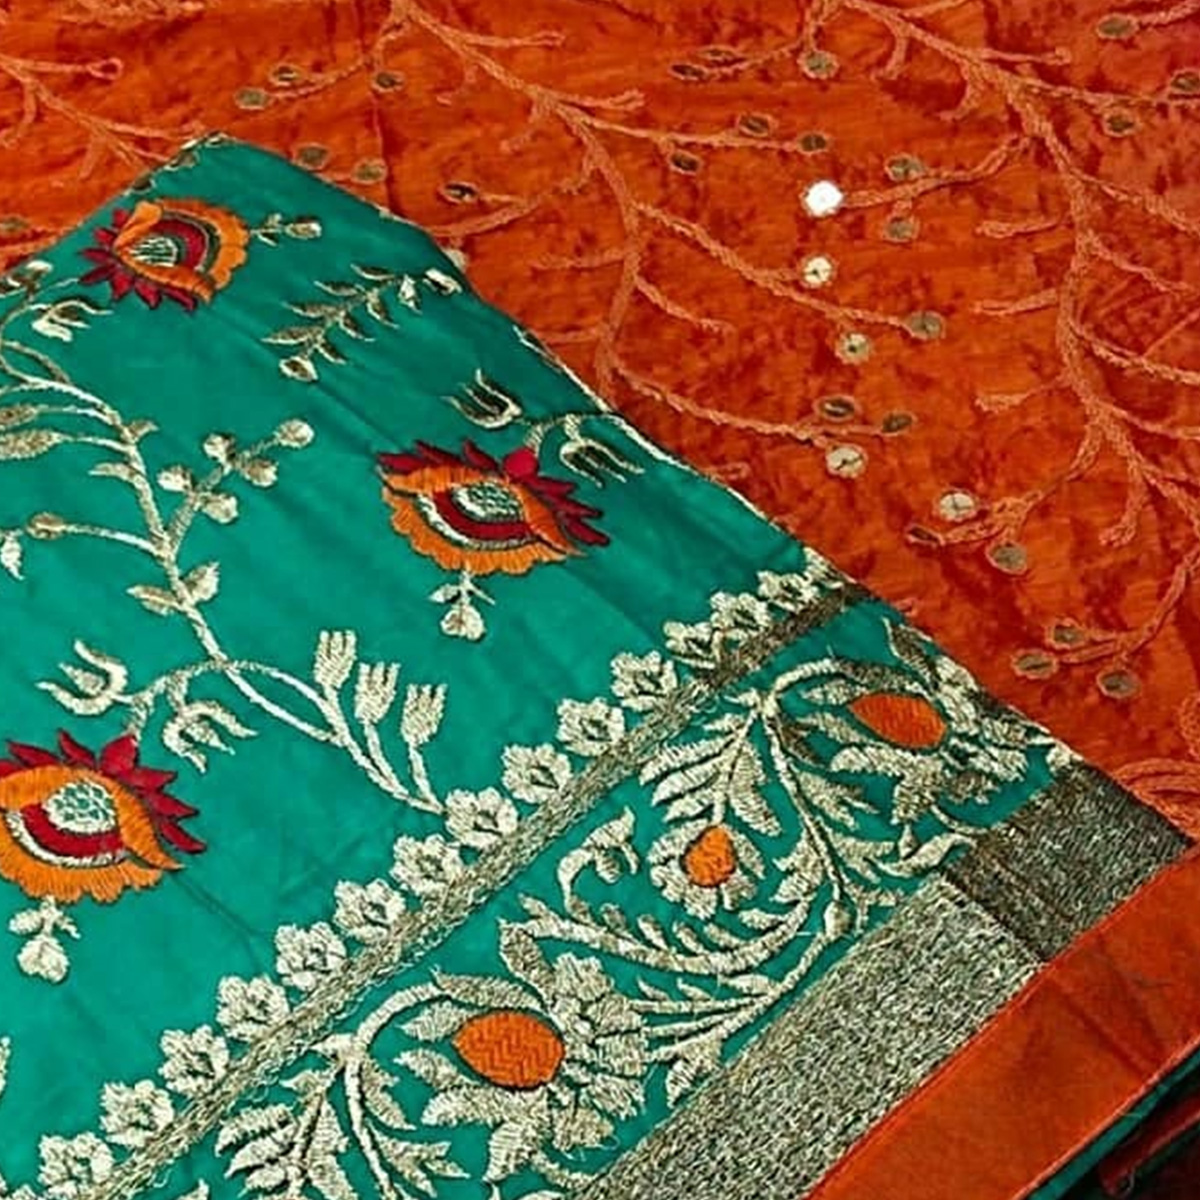 Ideal Turquoise Blue Colored Partwear Embroidered Chanderi Cotton Dress Material